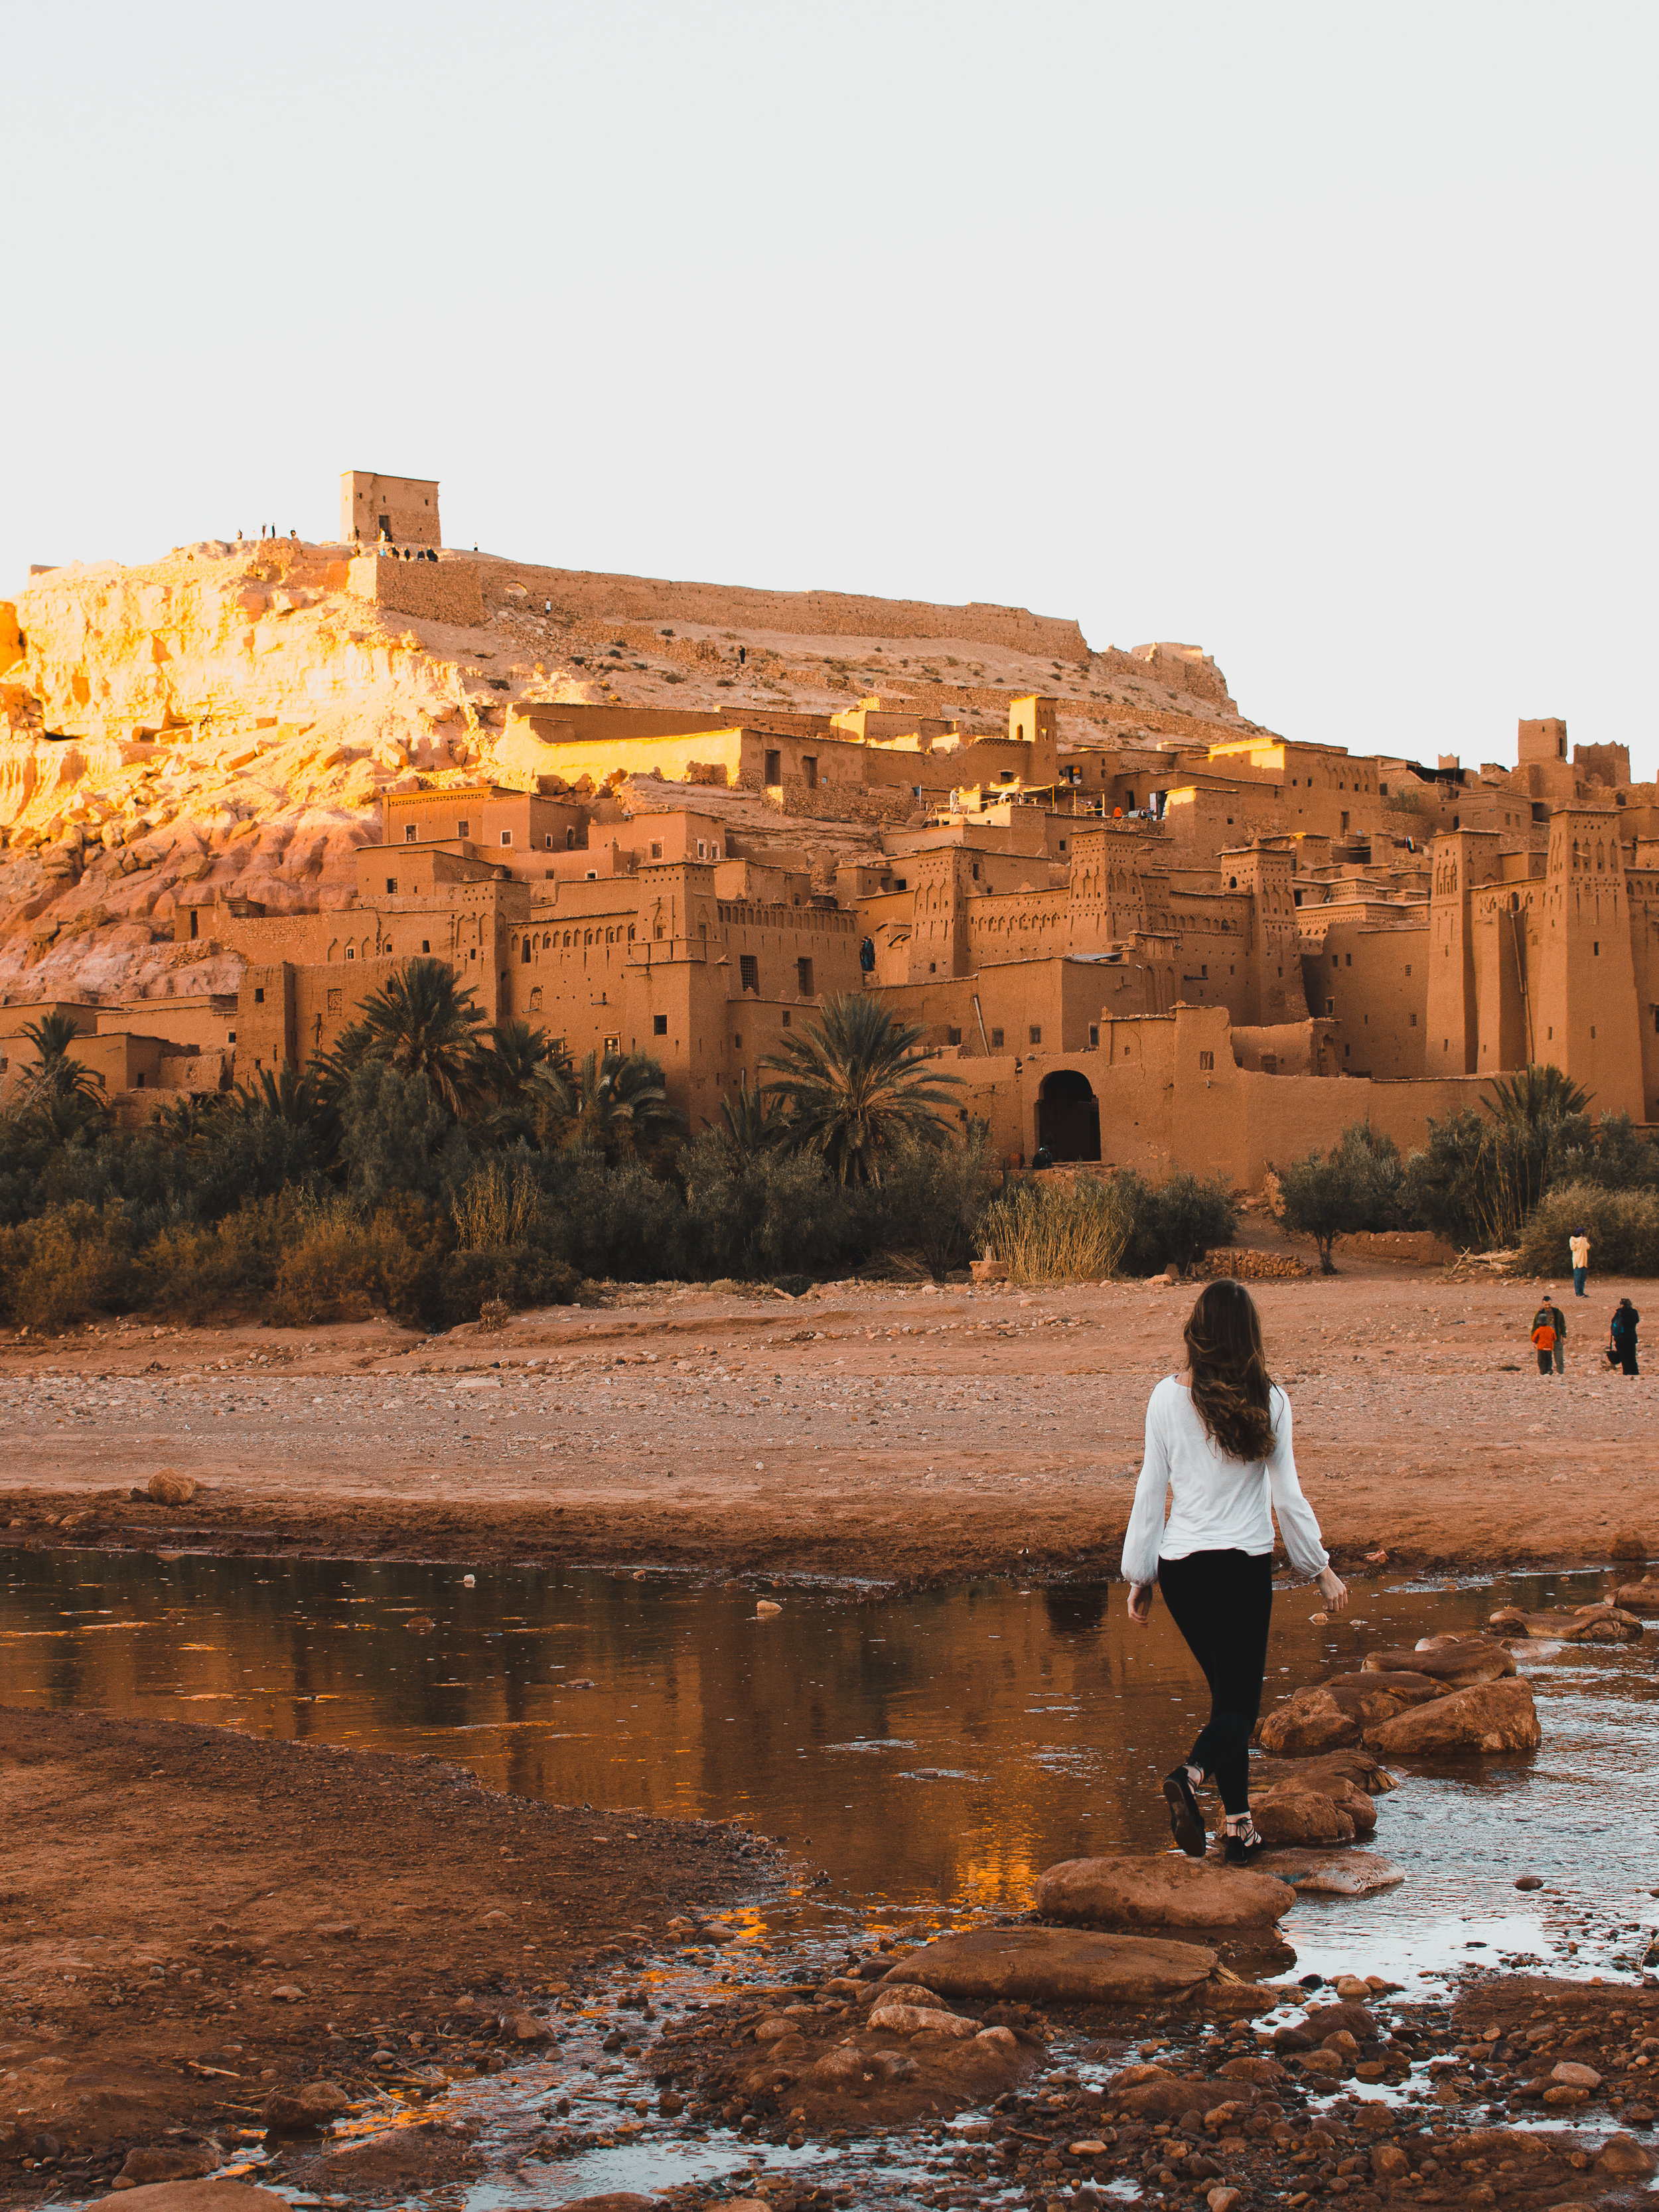 Golden hour at Ait Benhaddou in Morocco